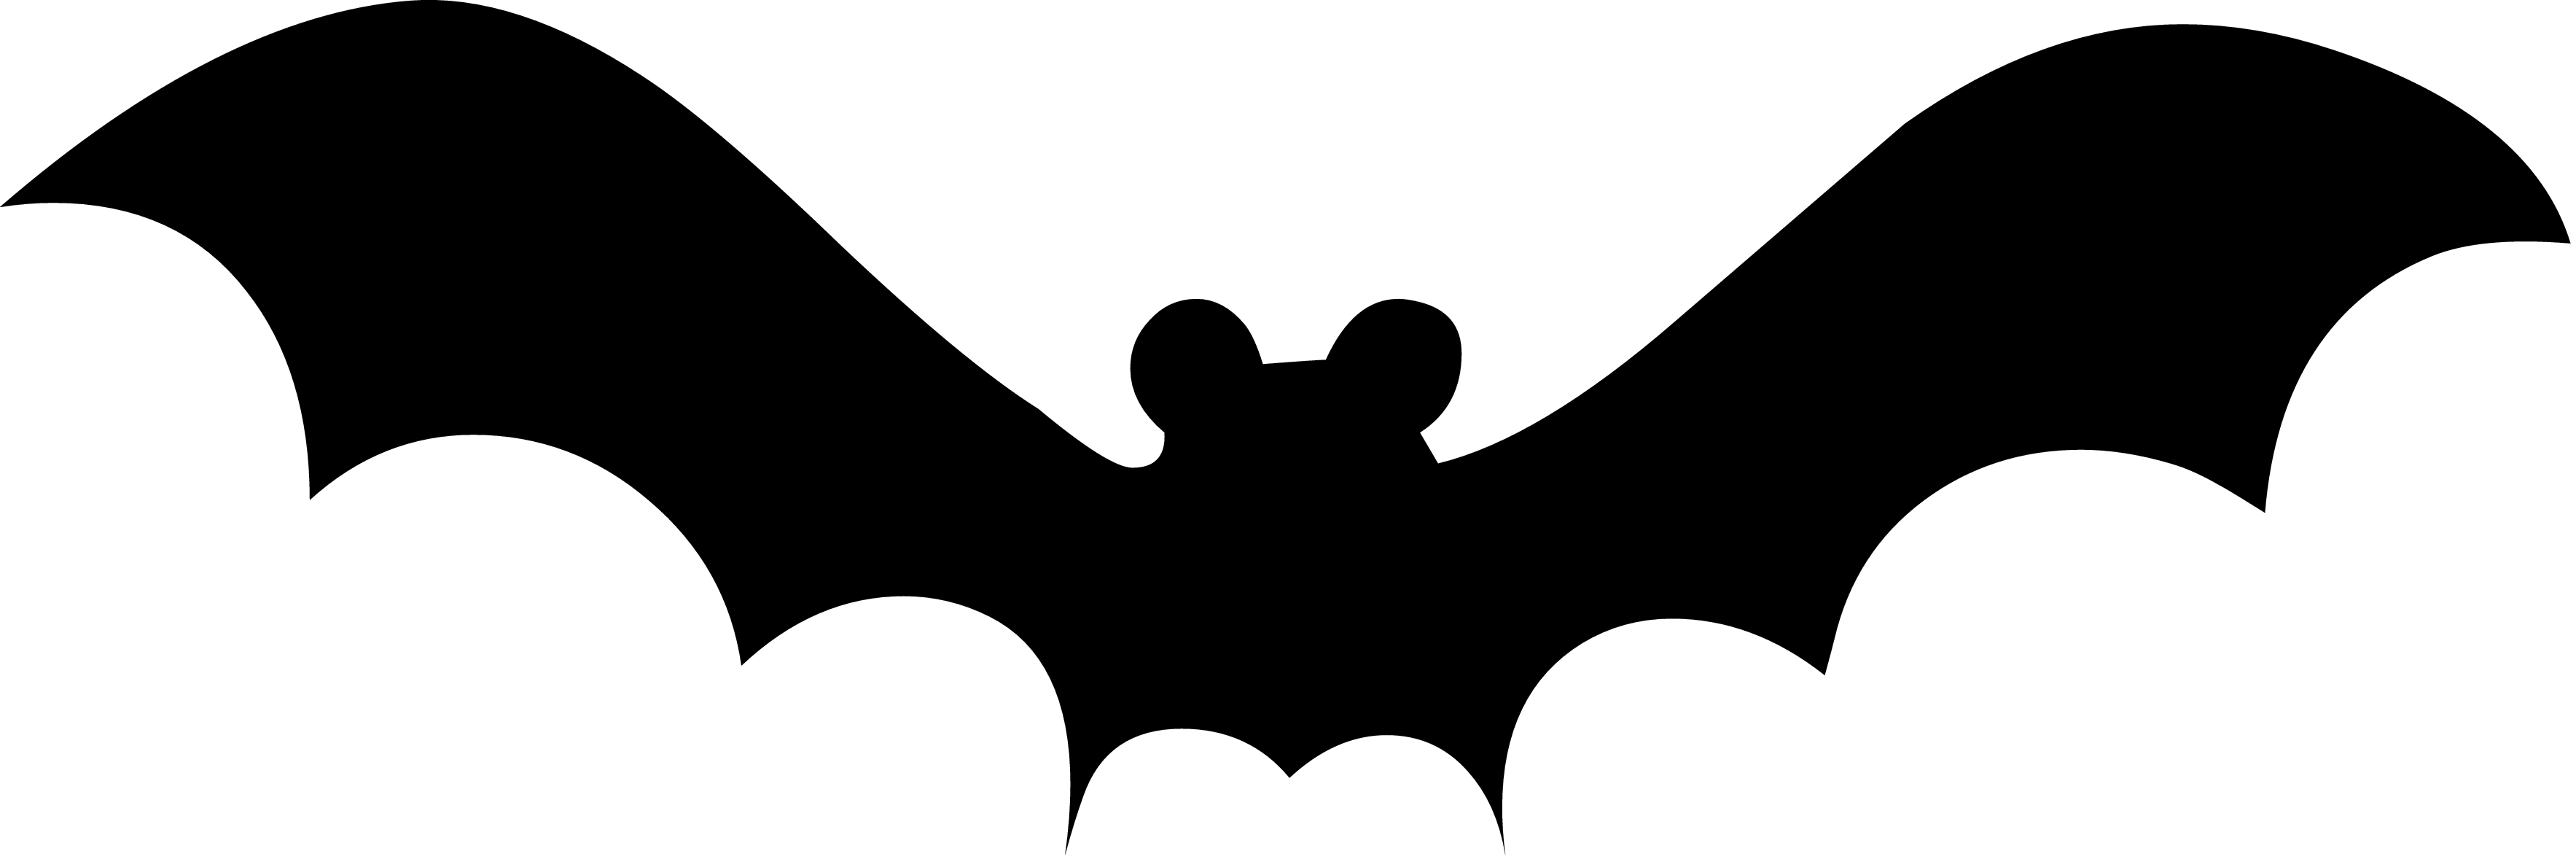 Halloween Bat Clipart Black And White Ghost Silhouette 20